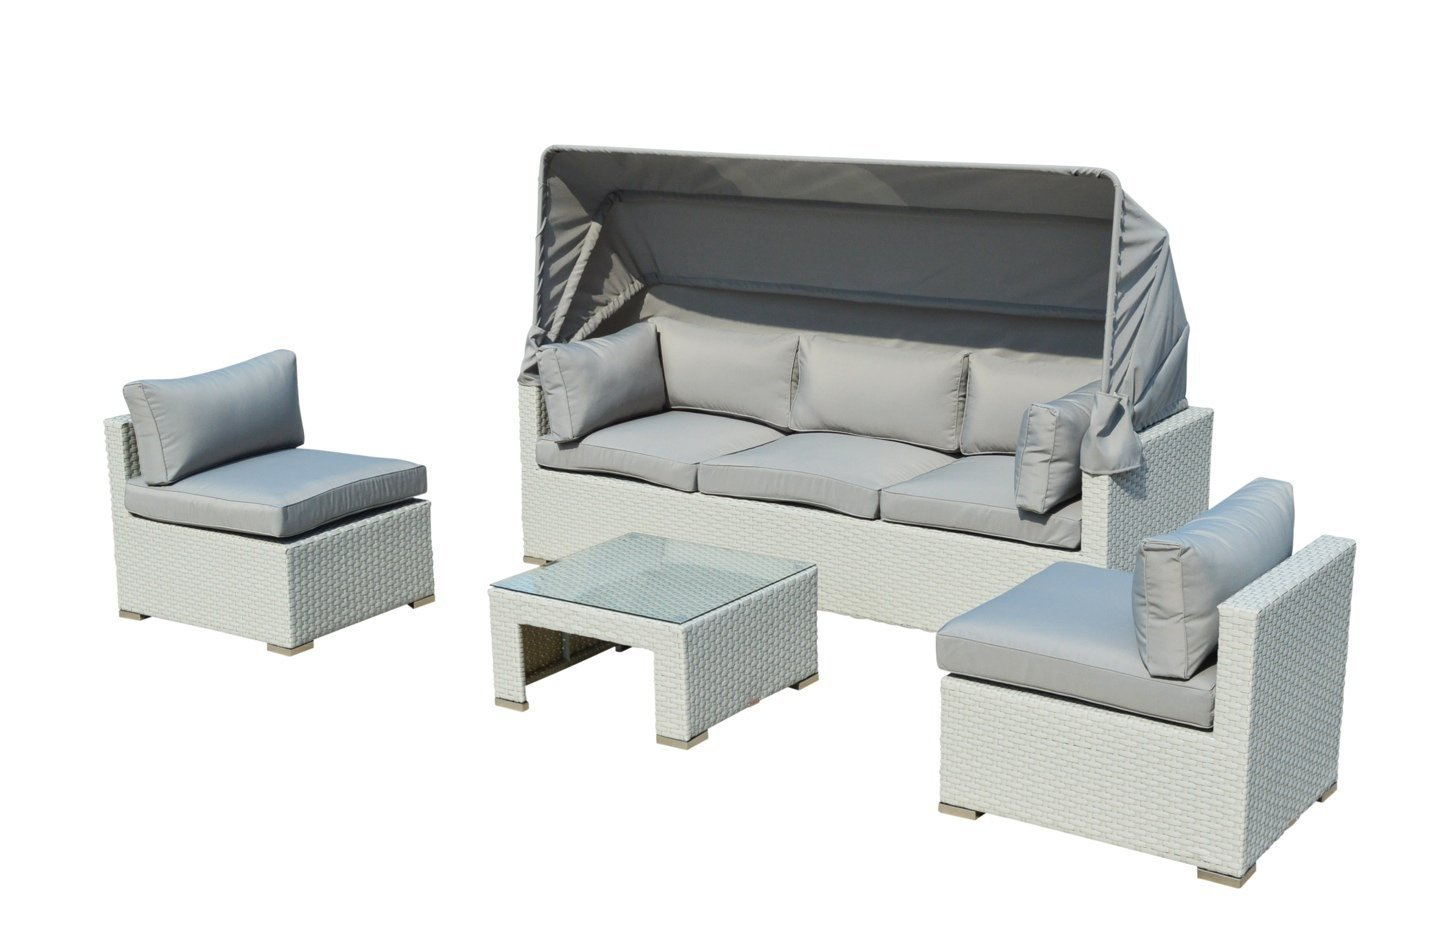 Outdoor Patio Furniture Backyard Sofa Modern All Weather Wicker Sectional  4pc Rattan Resin Couch Set